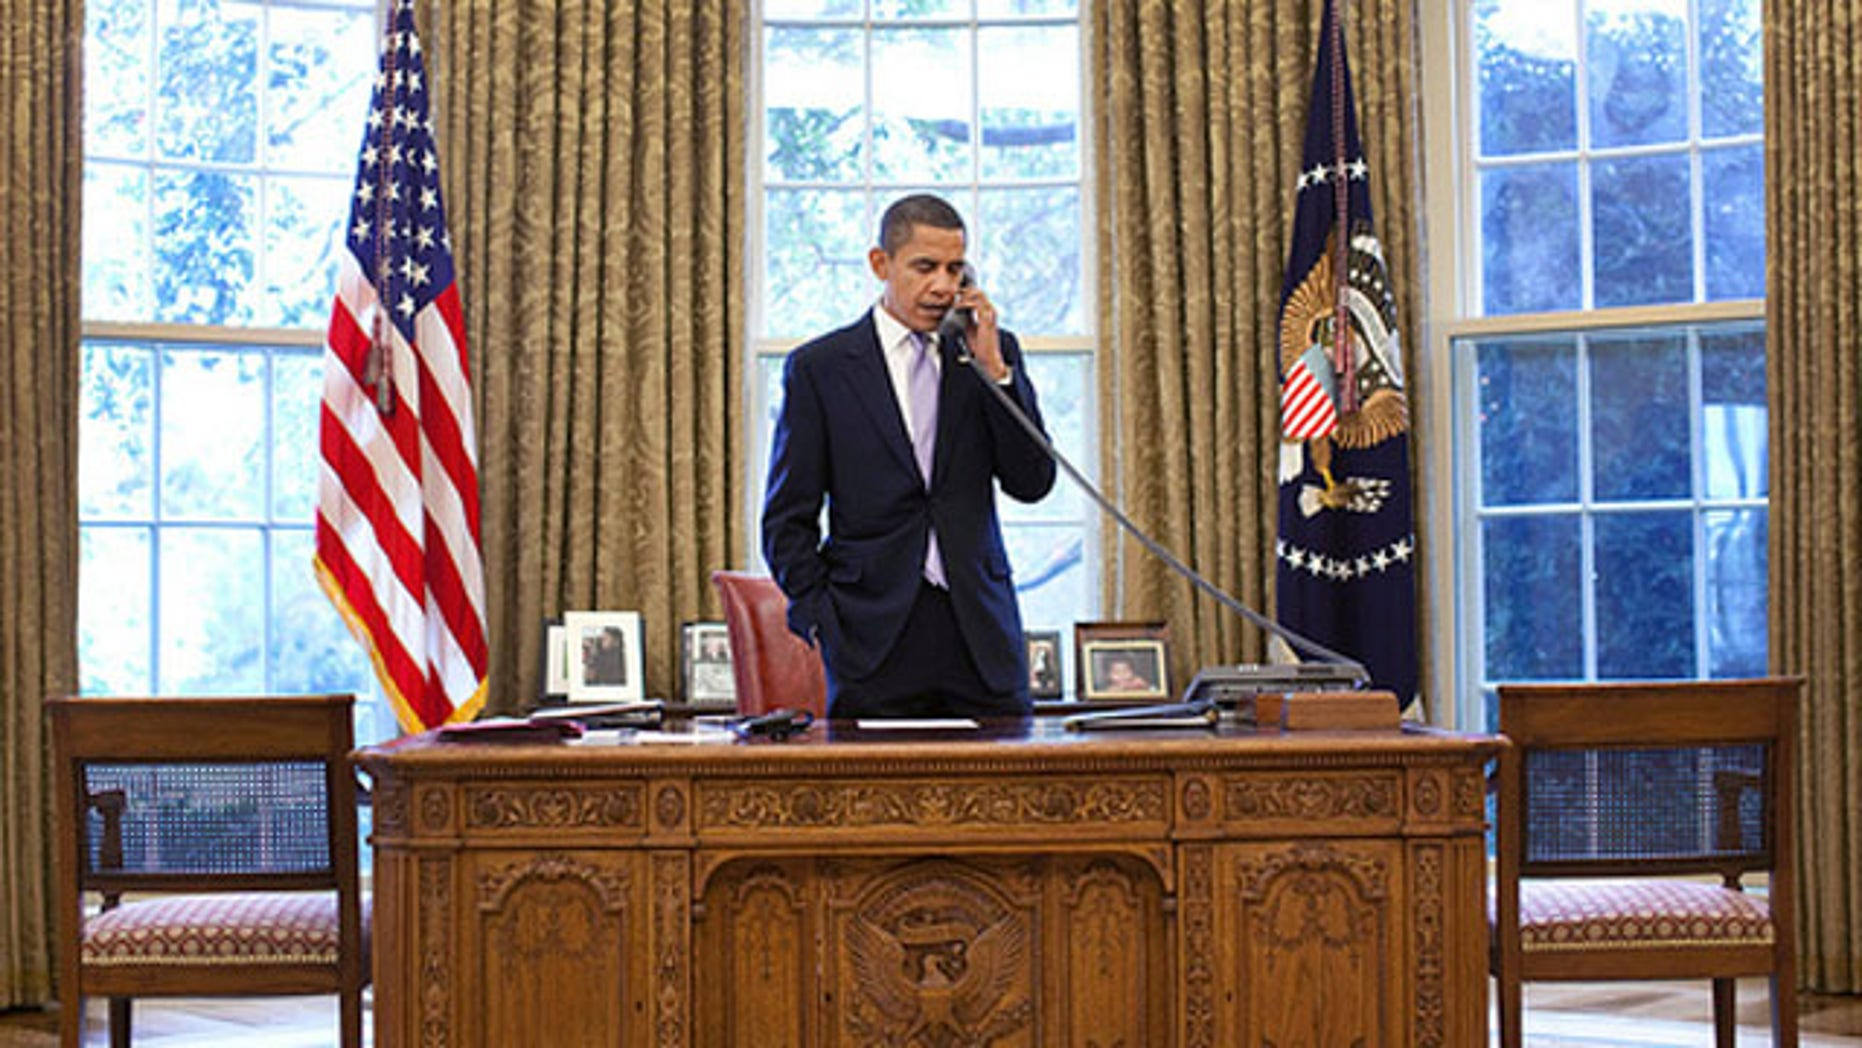 President Obama talks with Hamid Karzai about the Afghanistan election on a phone call from the Oval Office Nov. 2. (White House Photo)